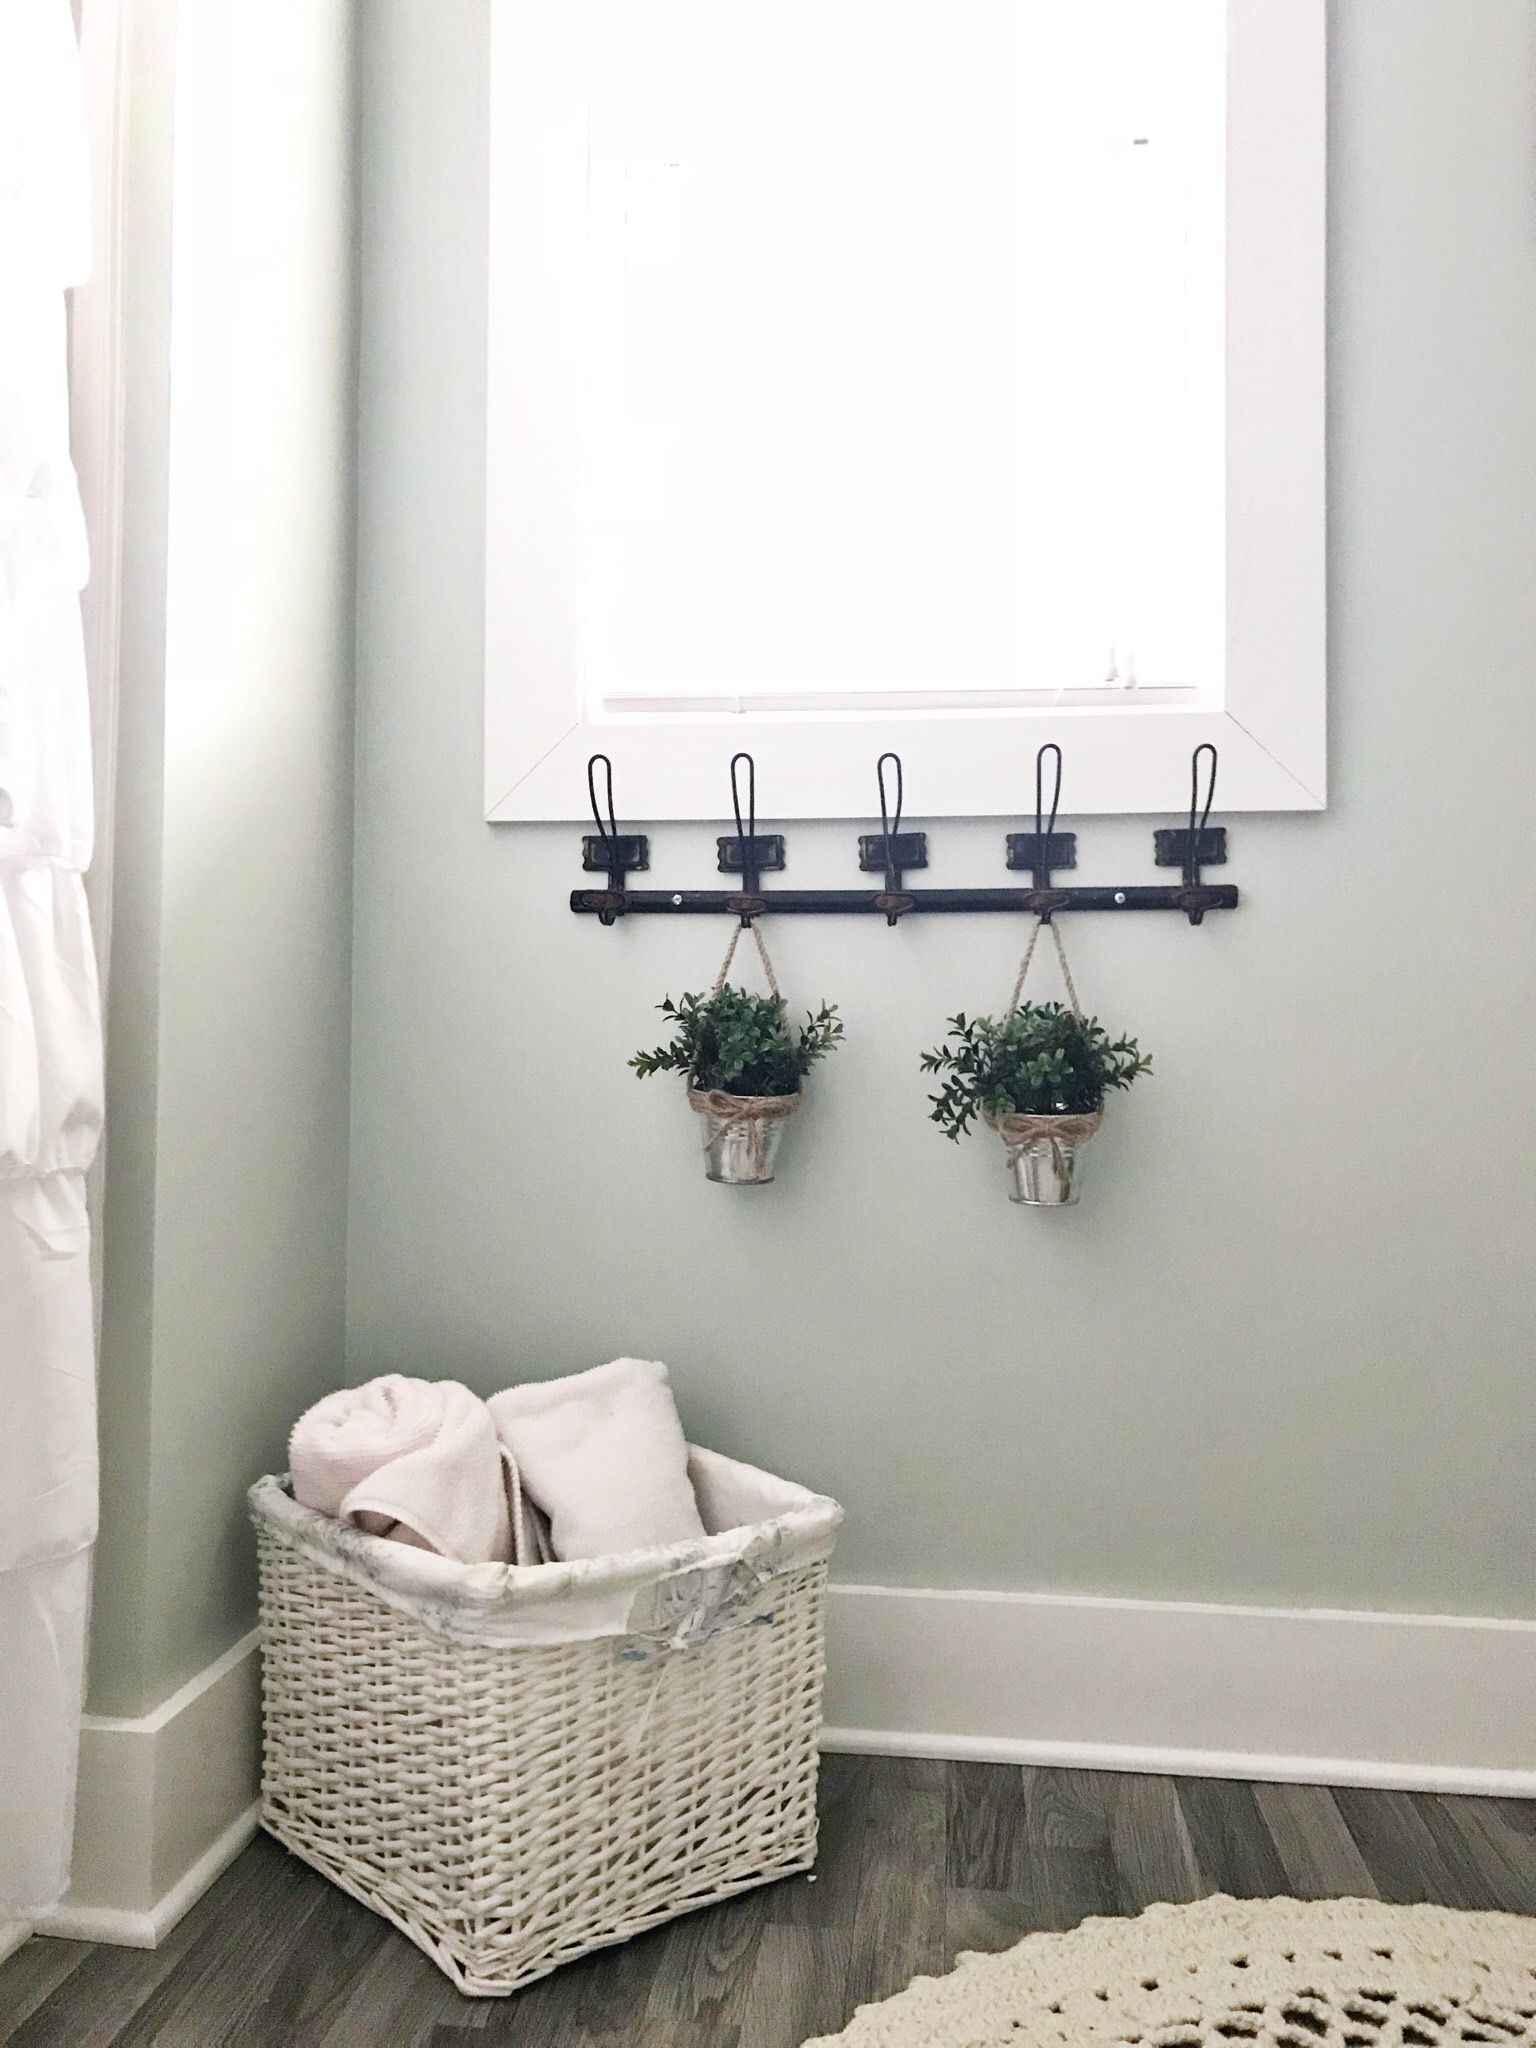 Home Styling Tips | For The Home | Bathroom Paint Colors, Small